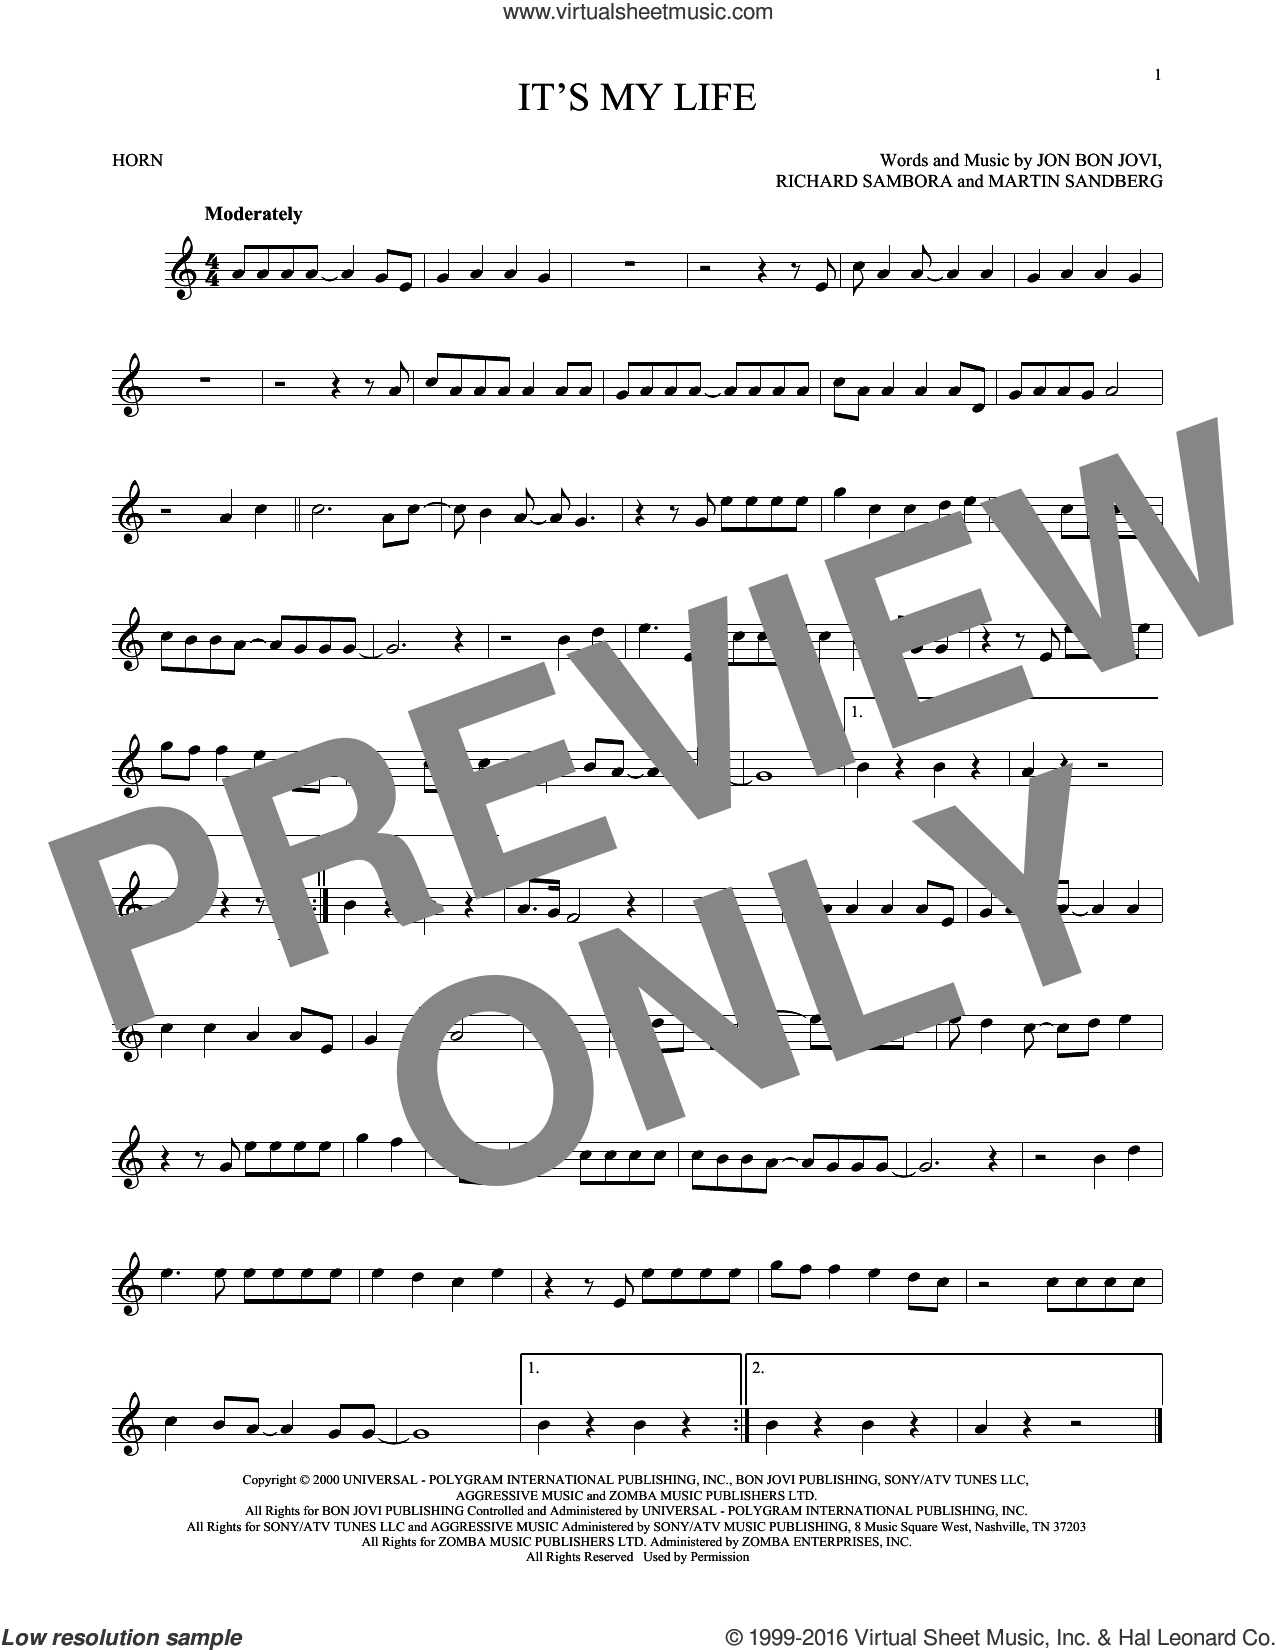 It's My Life sheet music for horn solo by Bon Jovi, Martin Sandberg and Richie Sambora, intermediate skill level